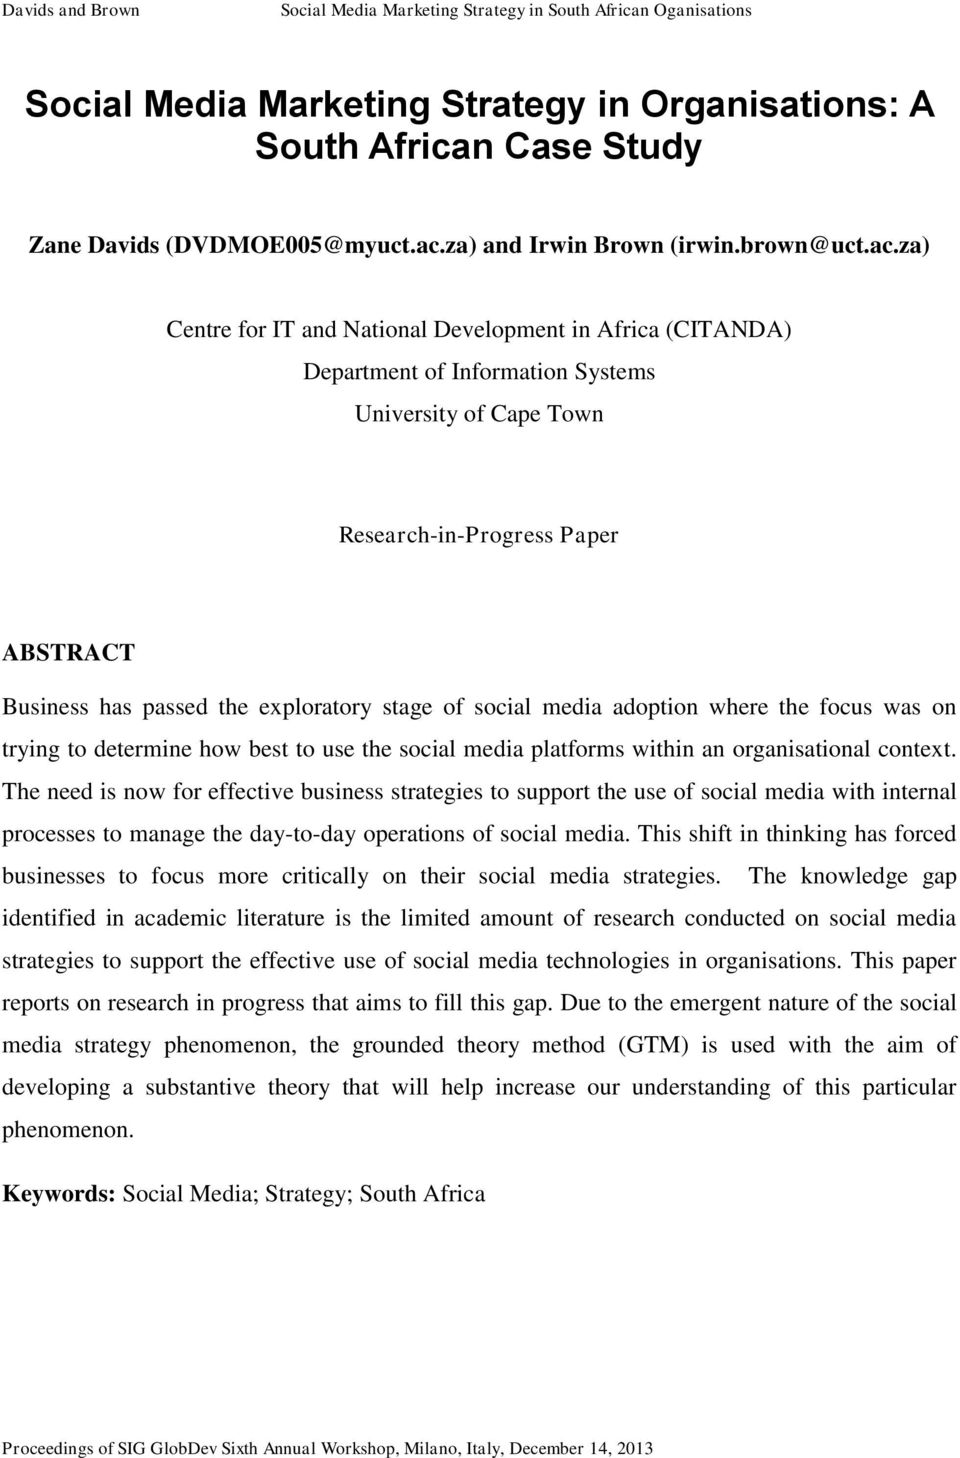 za) Centre for IT and National Development in Africa (CITANDA) Department of Information Systems University of Cape Town Research-in-Progress Paper ABSTRACT Business has passed the exploratory stage